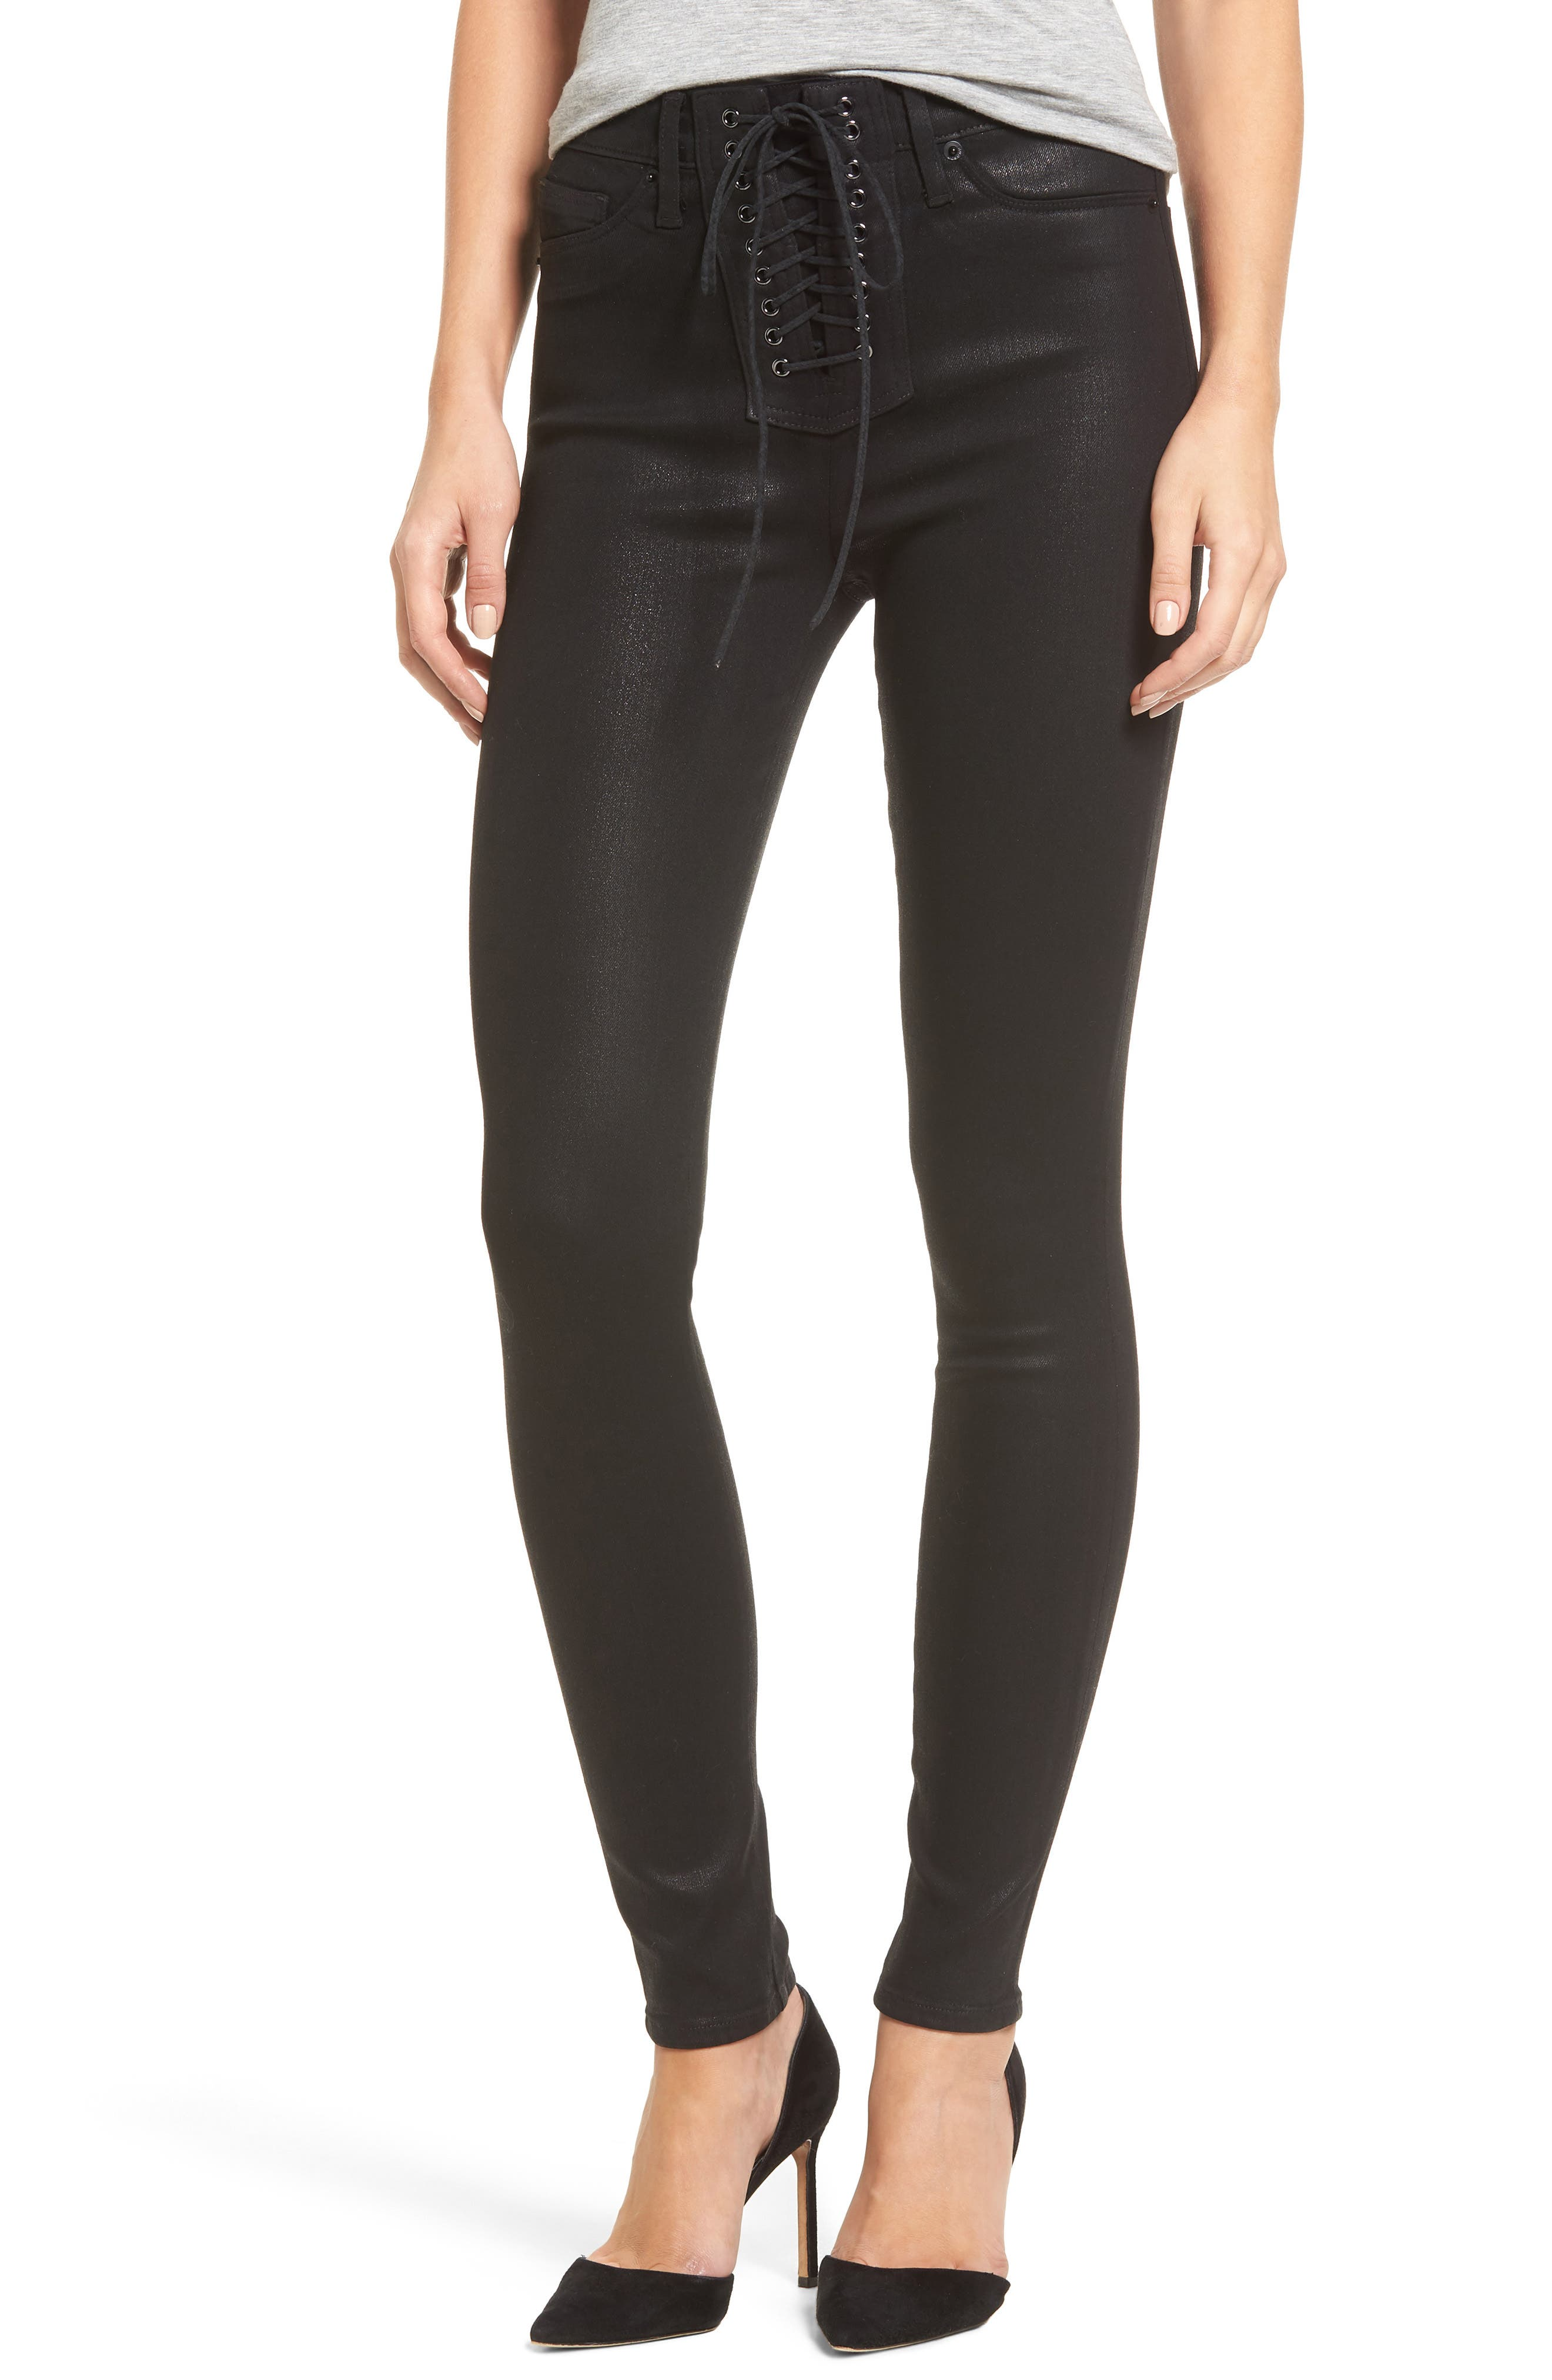 Alternate Image 1 Selected - Hudson Jeans Bullocks High Waist Lace-Up Skinny Jeans (Black Coated)